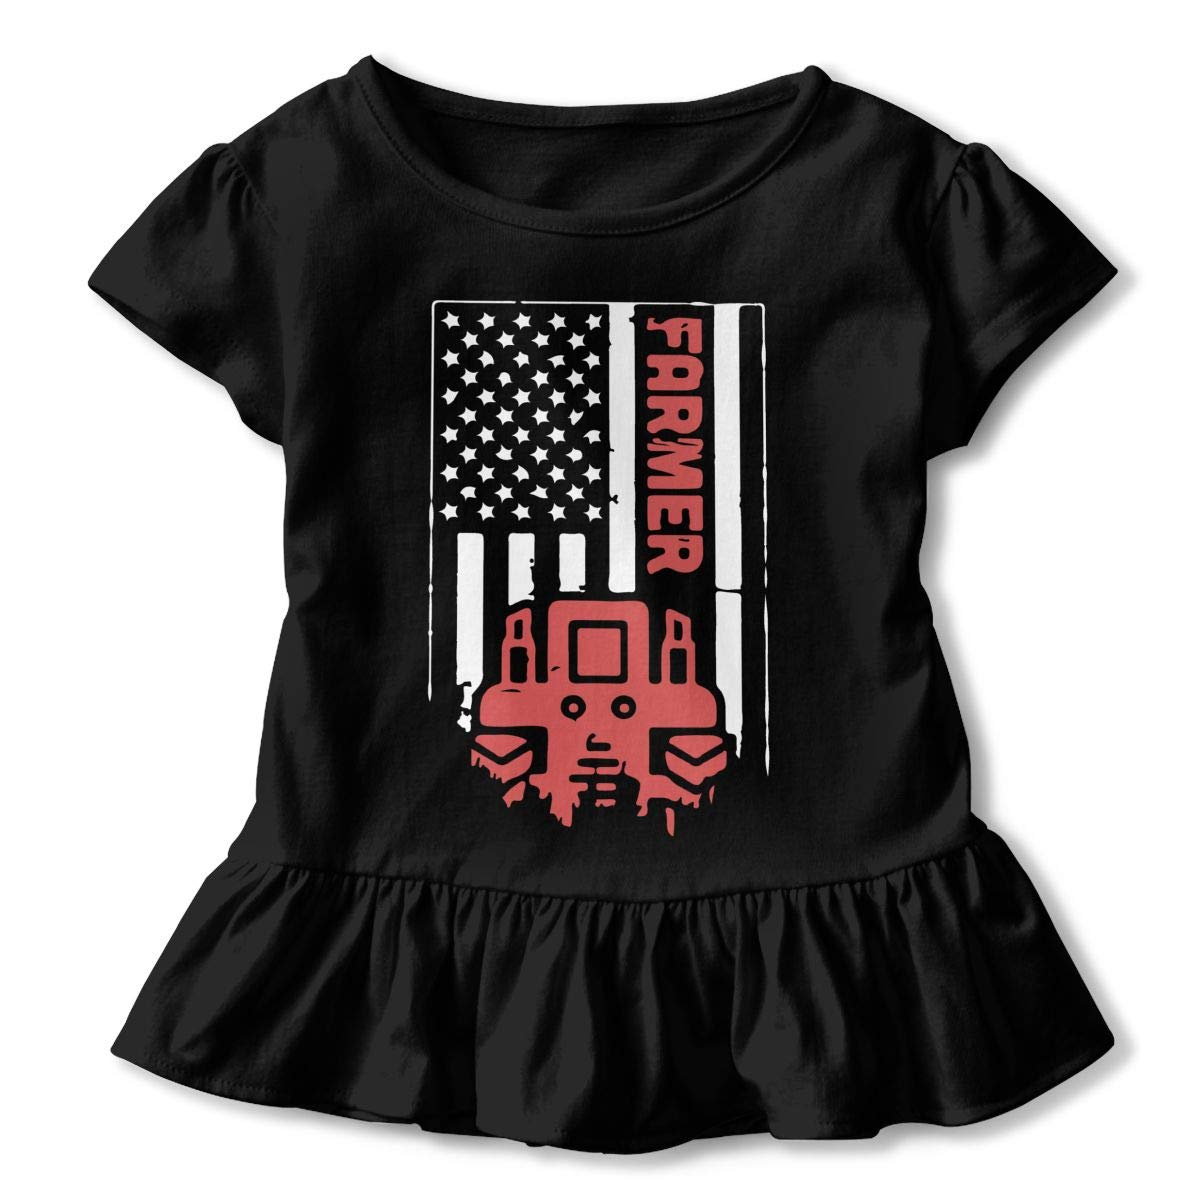 2-6T Cute Blouse Clothes with Falbala Zi7J9q-0 Short Sleeve Tractor /& American Flag Shirts for Girls